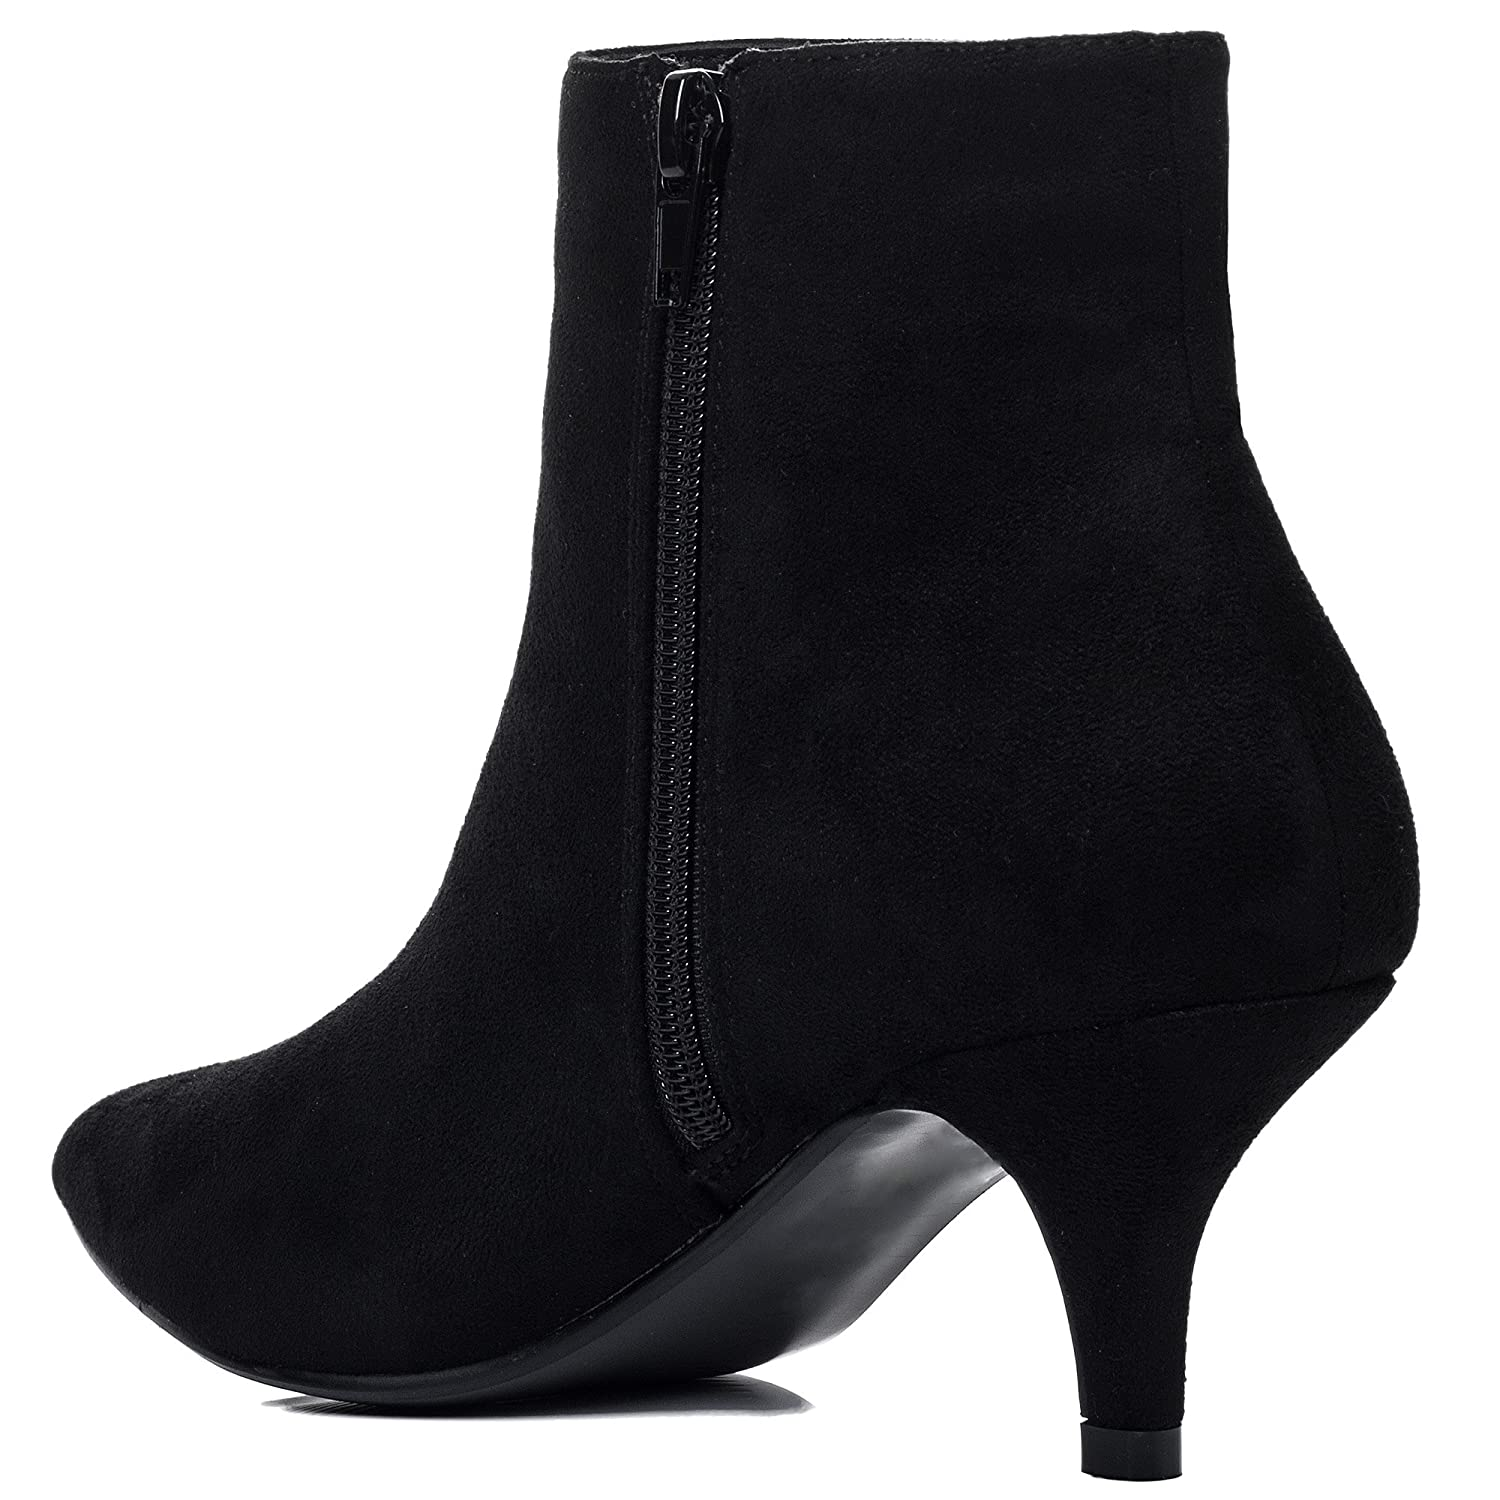 Kitten Heel Ankle Boots Shoes Black Suede Style Sz 8: Amazon.co.uk: Shoes &  Bags